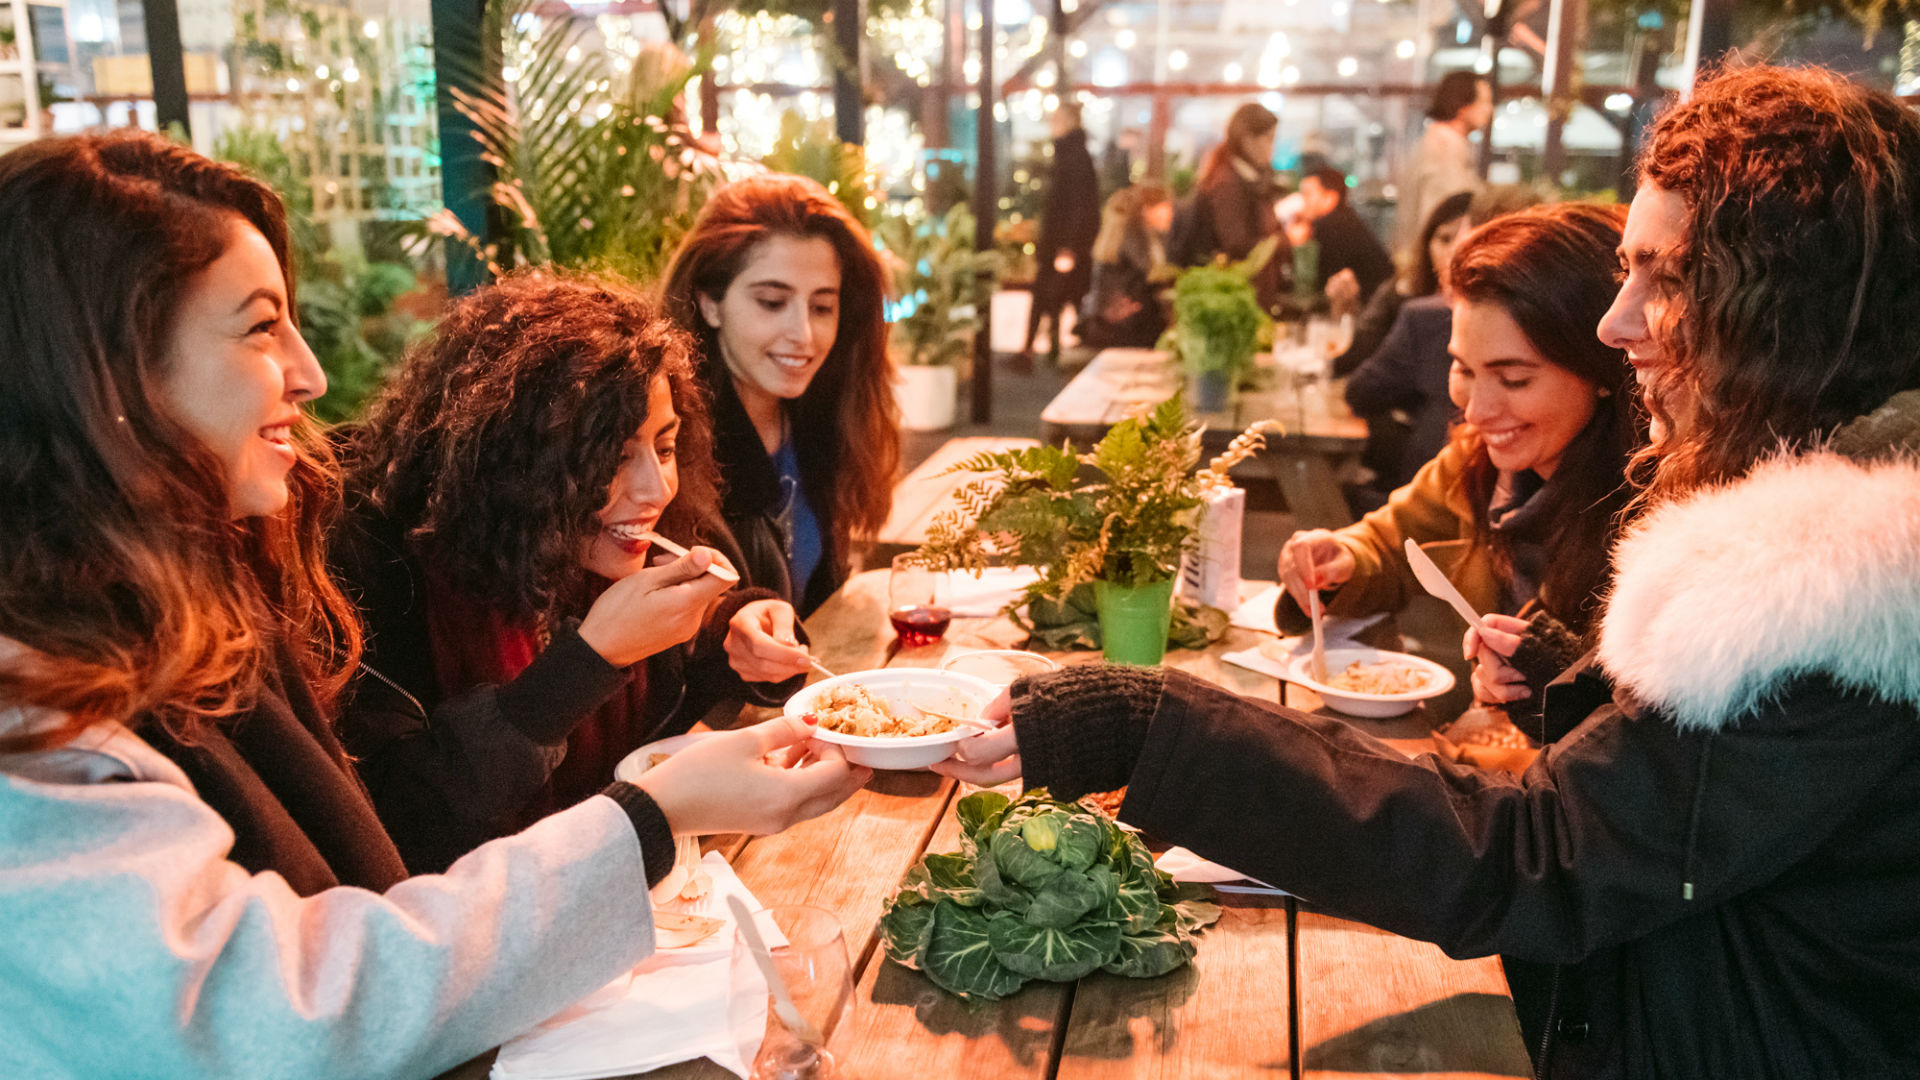 A photo of people sharing their food at the Taste of London.